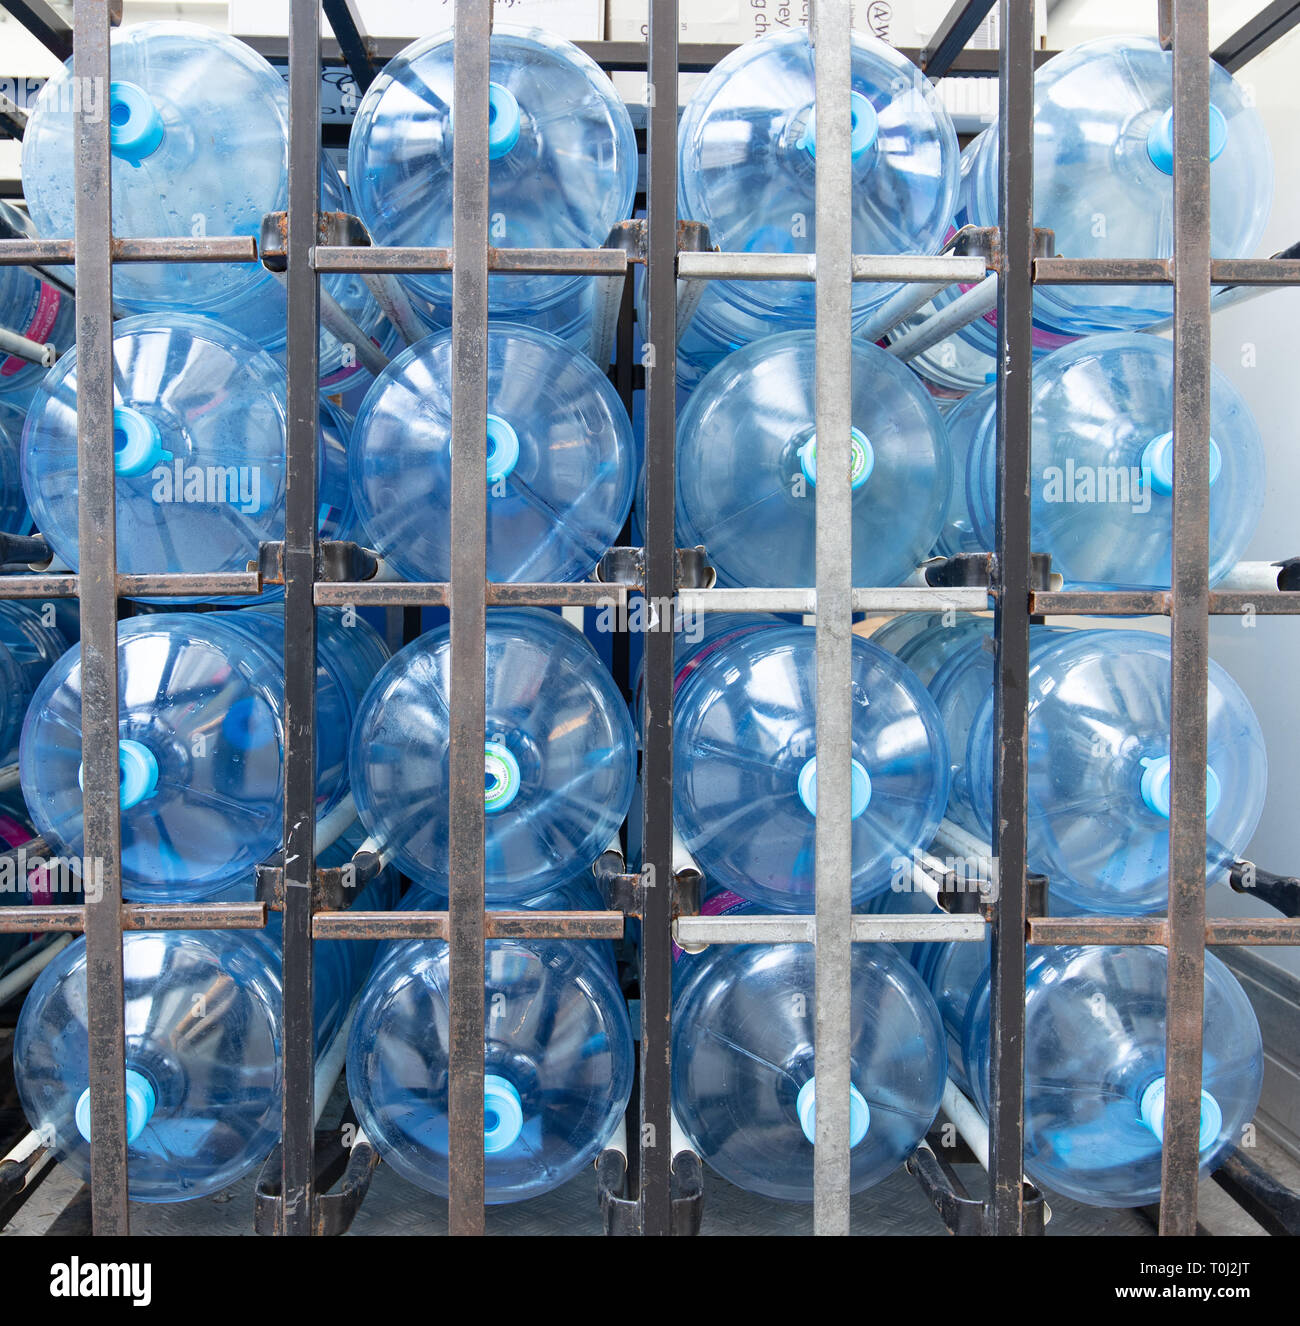 Group of large plastic water bottles neatly stacked in a frame inside a van for delivery to offices and other customers in central London, UK. - Stock Image